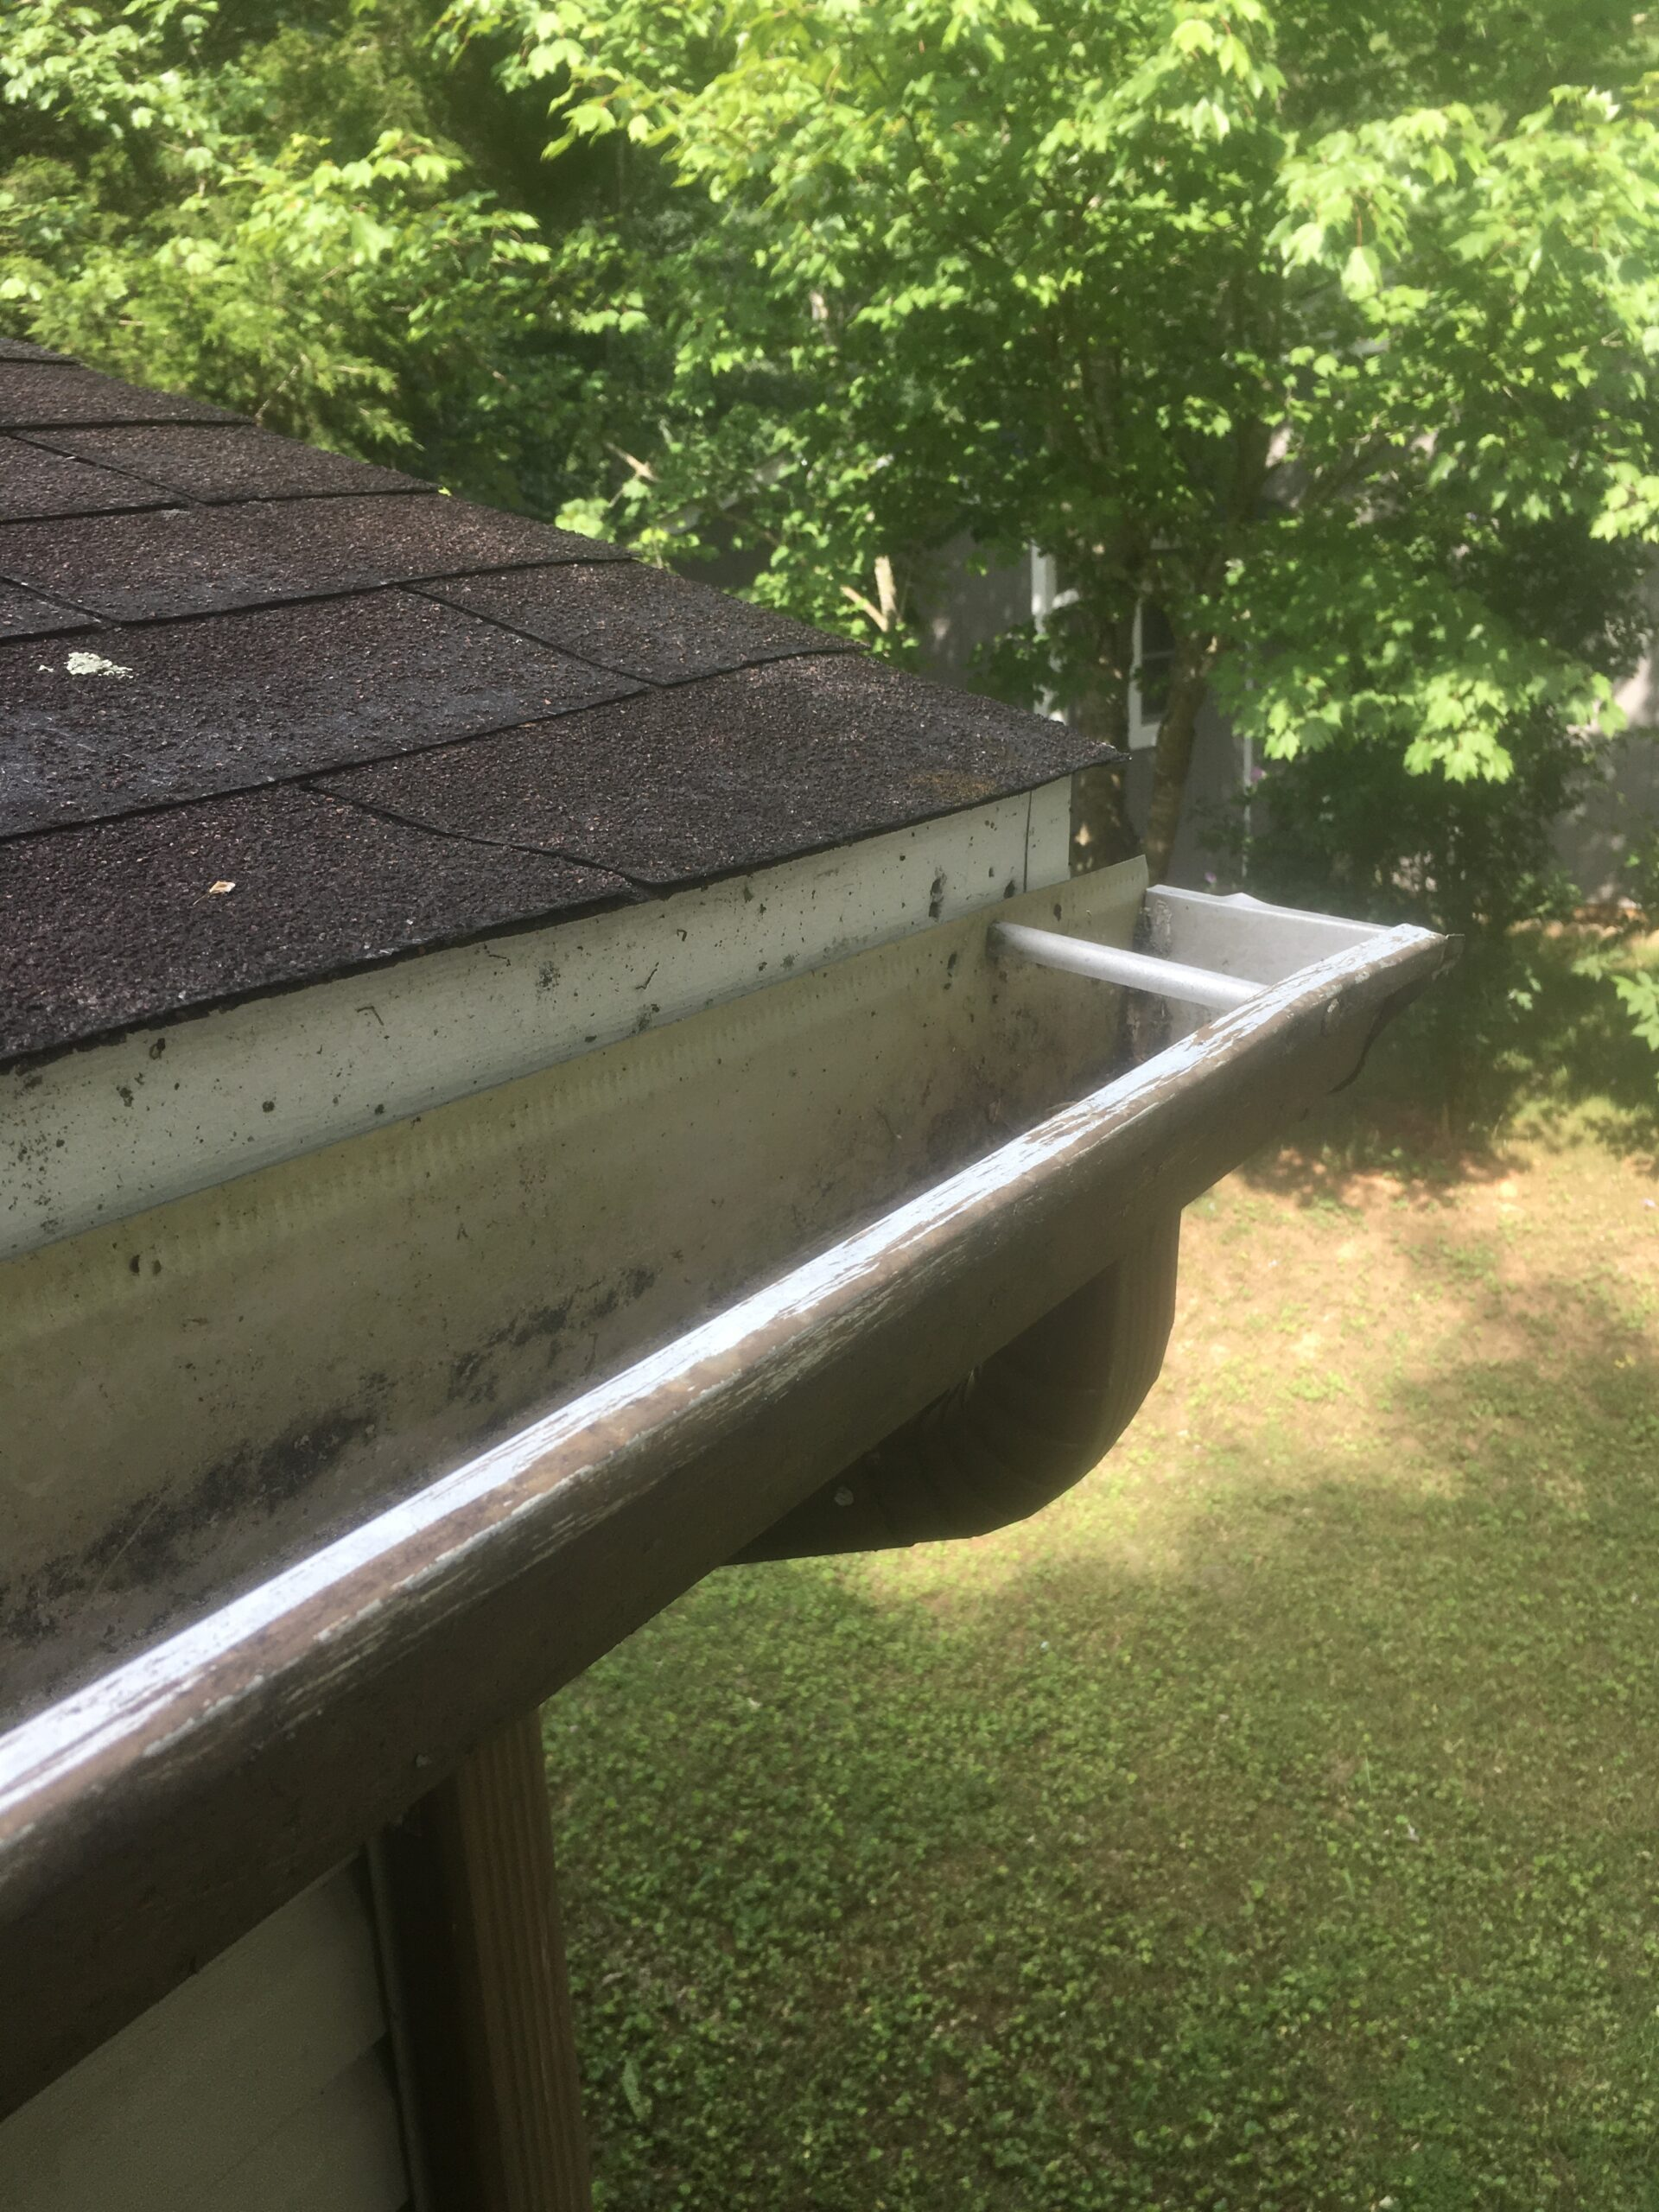 Gutters that are already damaged should be replaced, it is likely to be damaged during the roofing project.